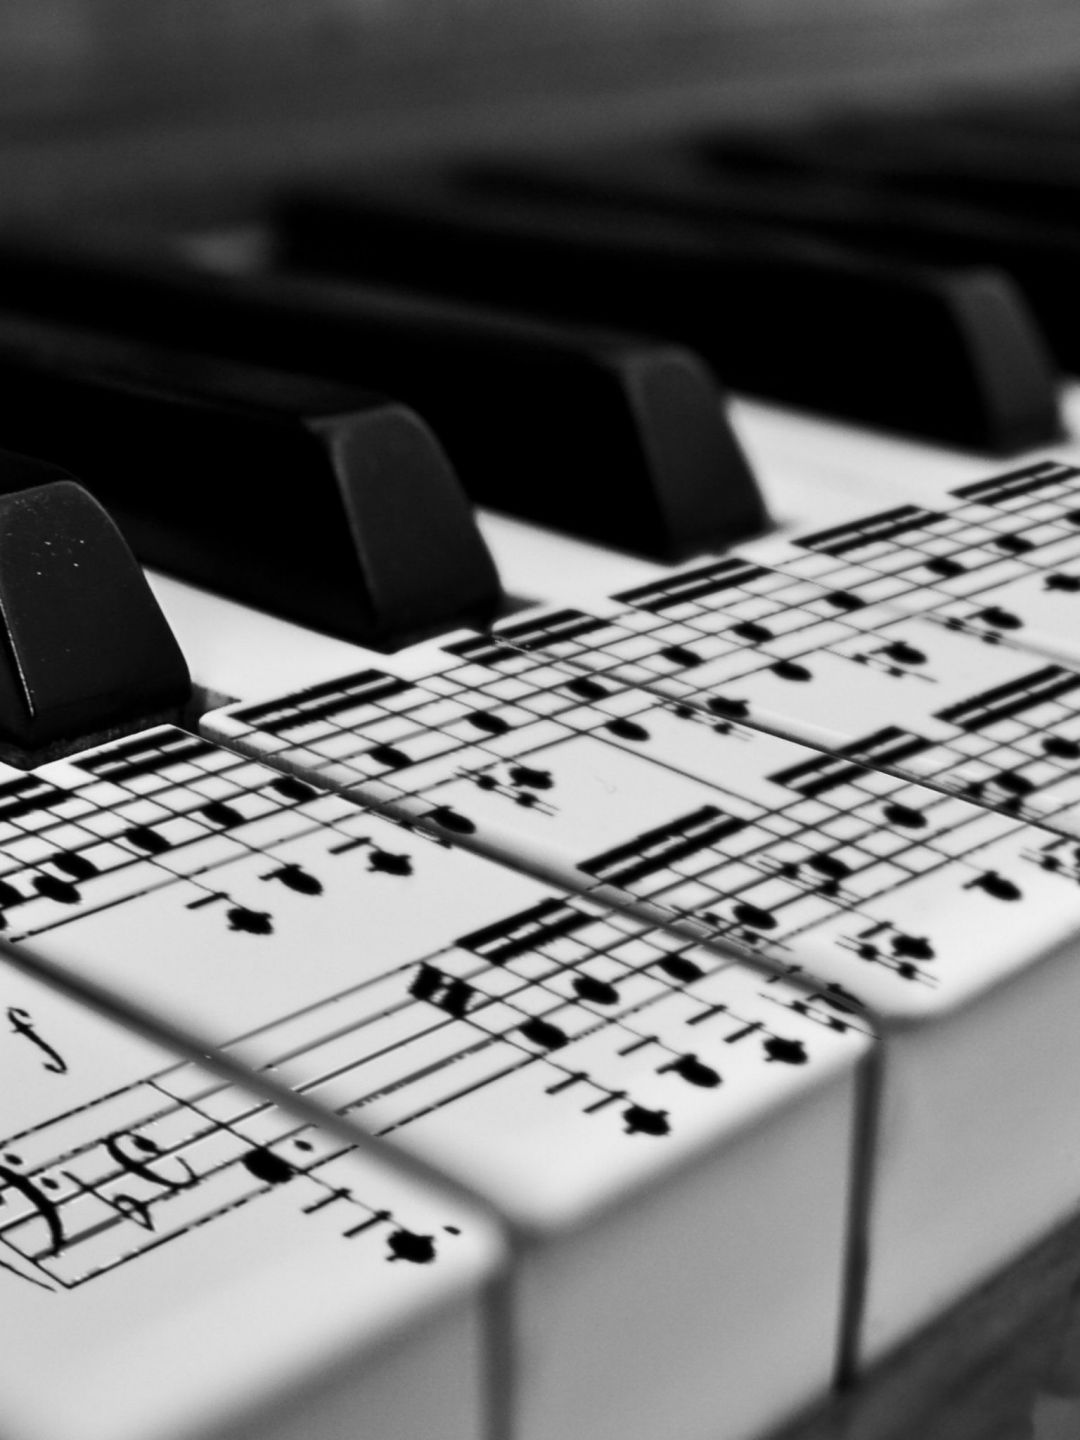 70 Hd Piano Android Iphone Desktop Hd Backgrounds Wallpapers 1080p 4k 1536x2048 2020